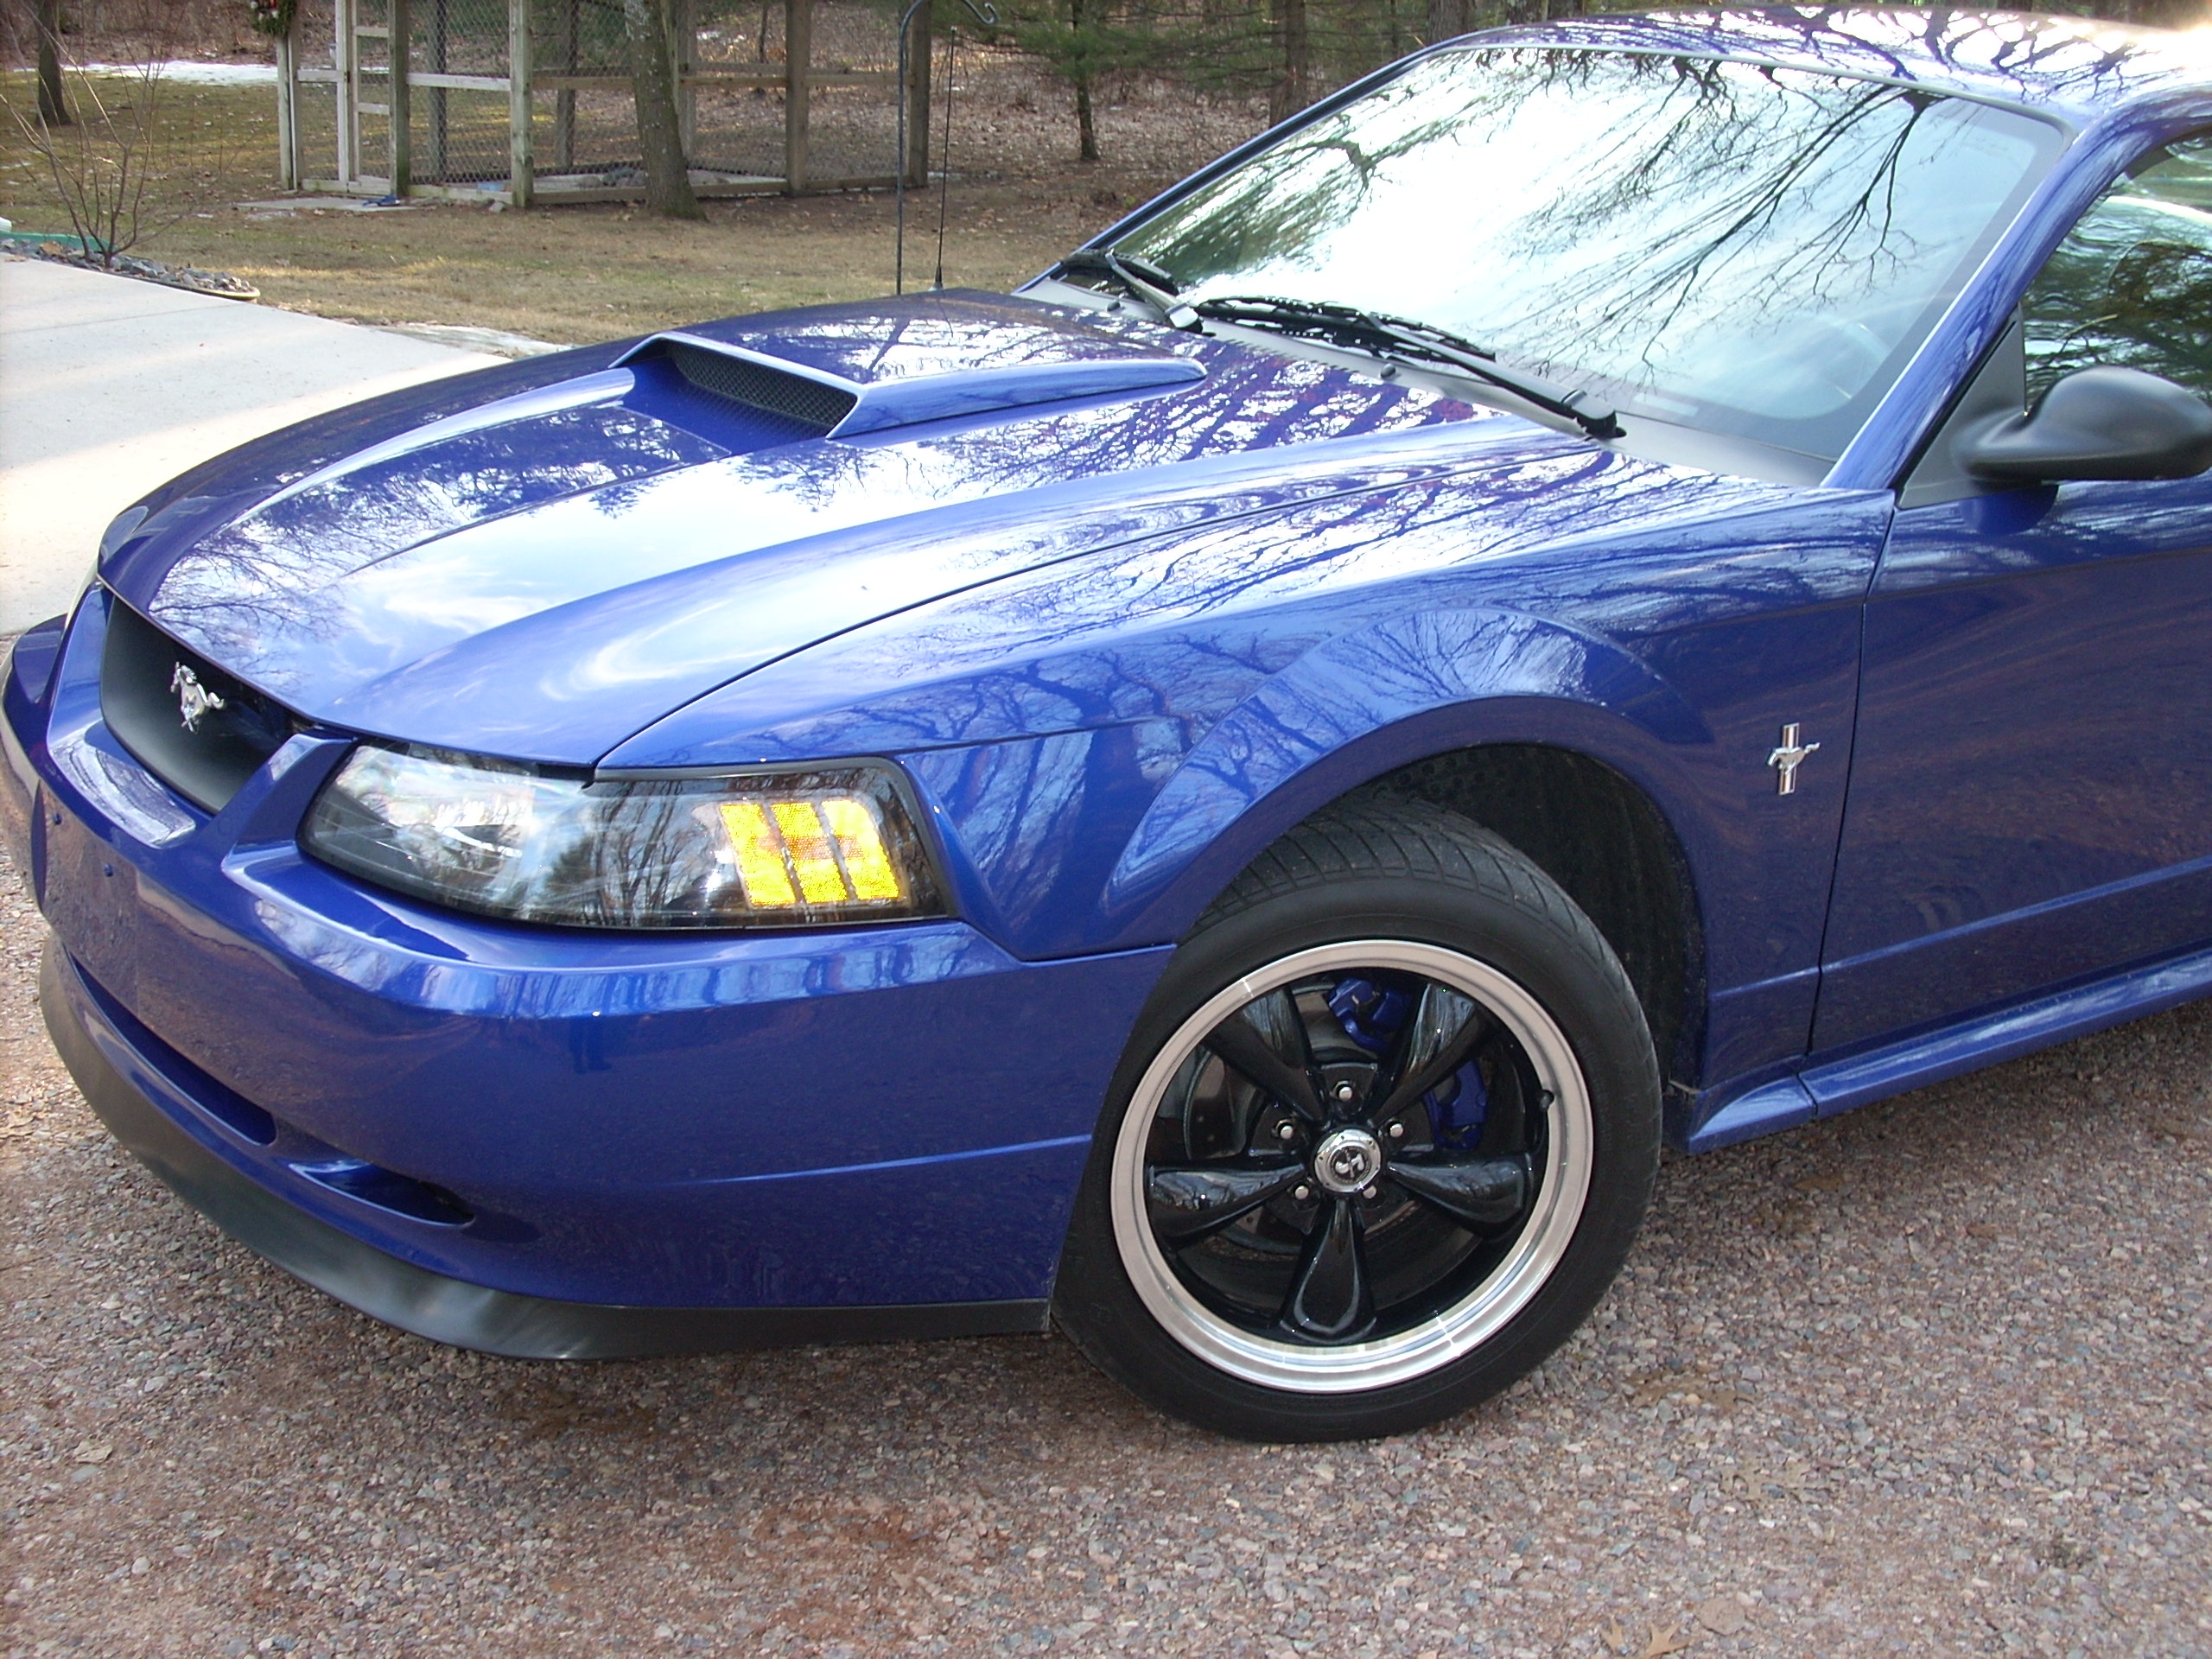 Click image for larger version  Name:Mustang Wheel 3.jpg Views:1003 Size:1.23 MB ID:21542